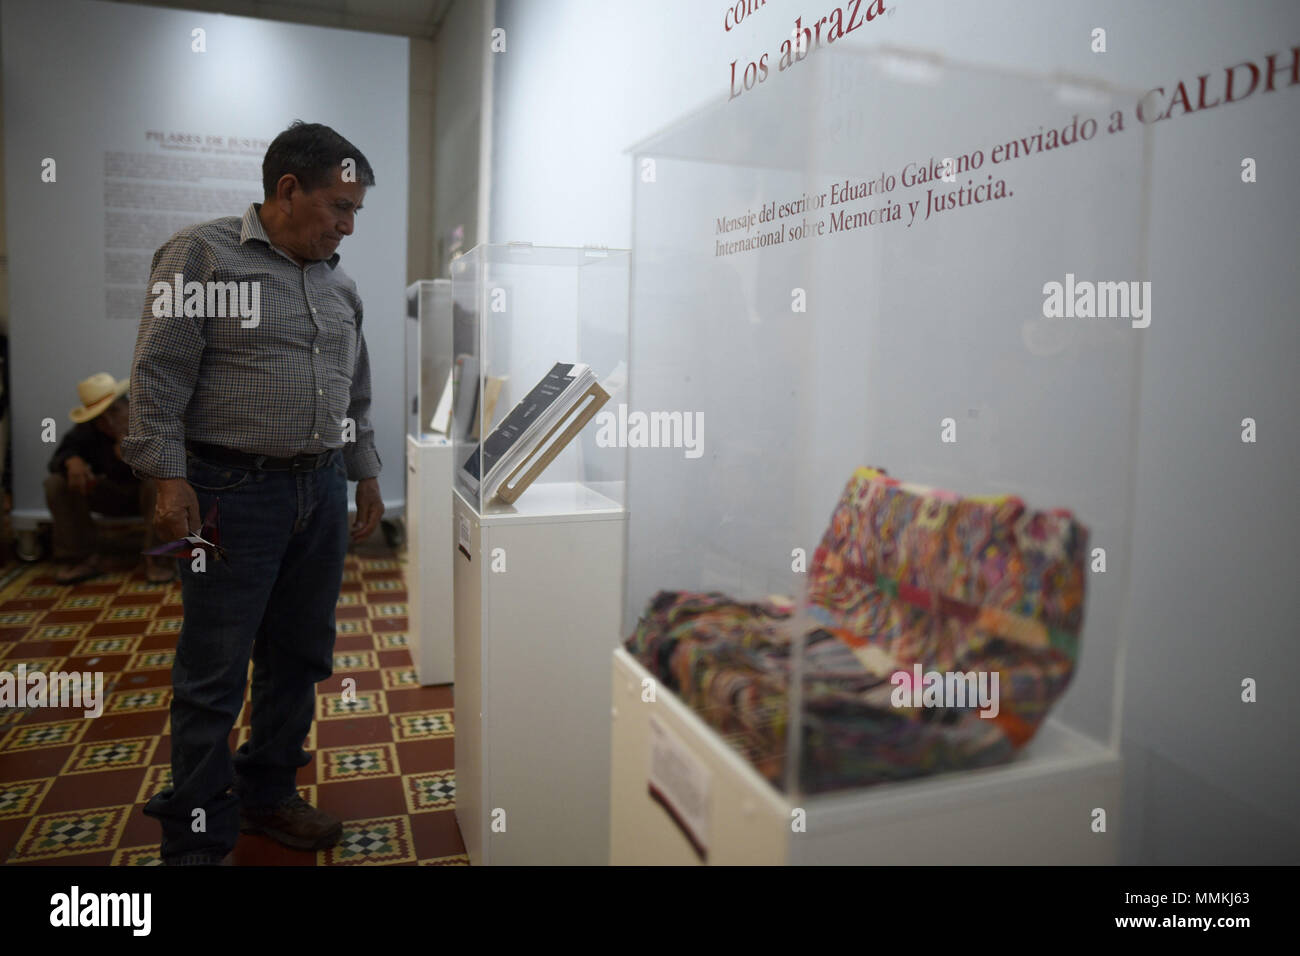 Ciudad De Guatemala, Guatemala. 12th May, 2018. A man observes a certified copy of the Victoria Plan, one of the military strategies used during the civil war (1960-1996), in the Casa de la Memoria, in Guatemala City, Guatemala, on 10 May 2018. In the front yard of the Casa de la Memoria, in the historic center of Guatemala City, some 70 Ixil indigenous people settle in chairs, standing and on the floor to be photographed by personnel from the Center for Legal Action in Human Rights ( CALDH). Credit: EDWIN BERCIÁN/EFE/Alamy Live News - Stock Image